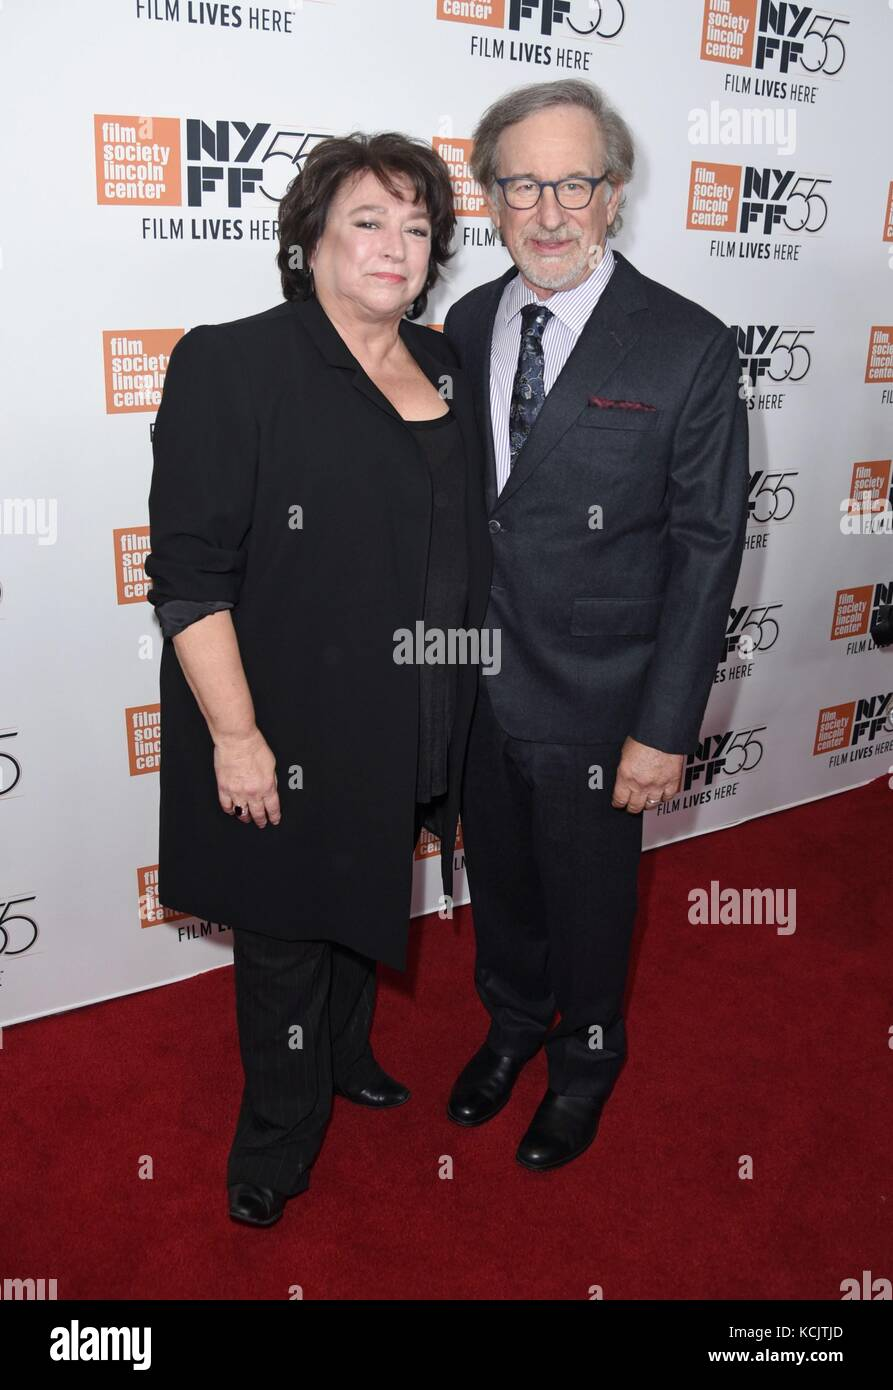 New York, NY, USA. 5th Oct, 2017. Susan Lacy, Steven Spielberg at arrivals for SPIELBERG Premiere at the 55th Annual - Stock Image